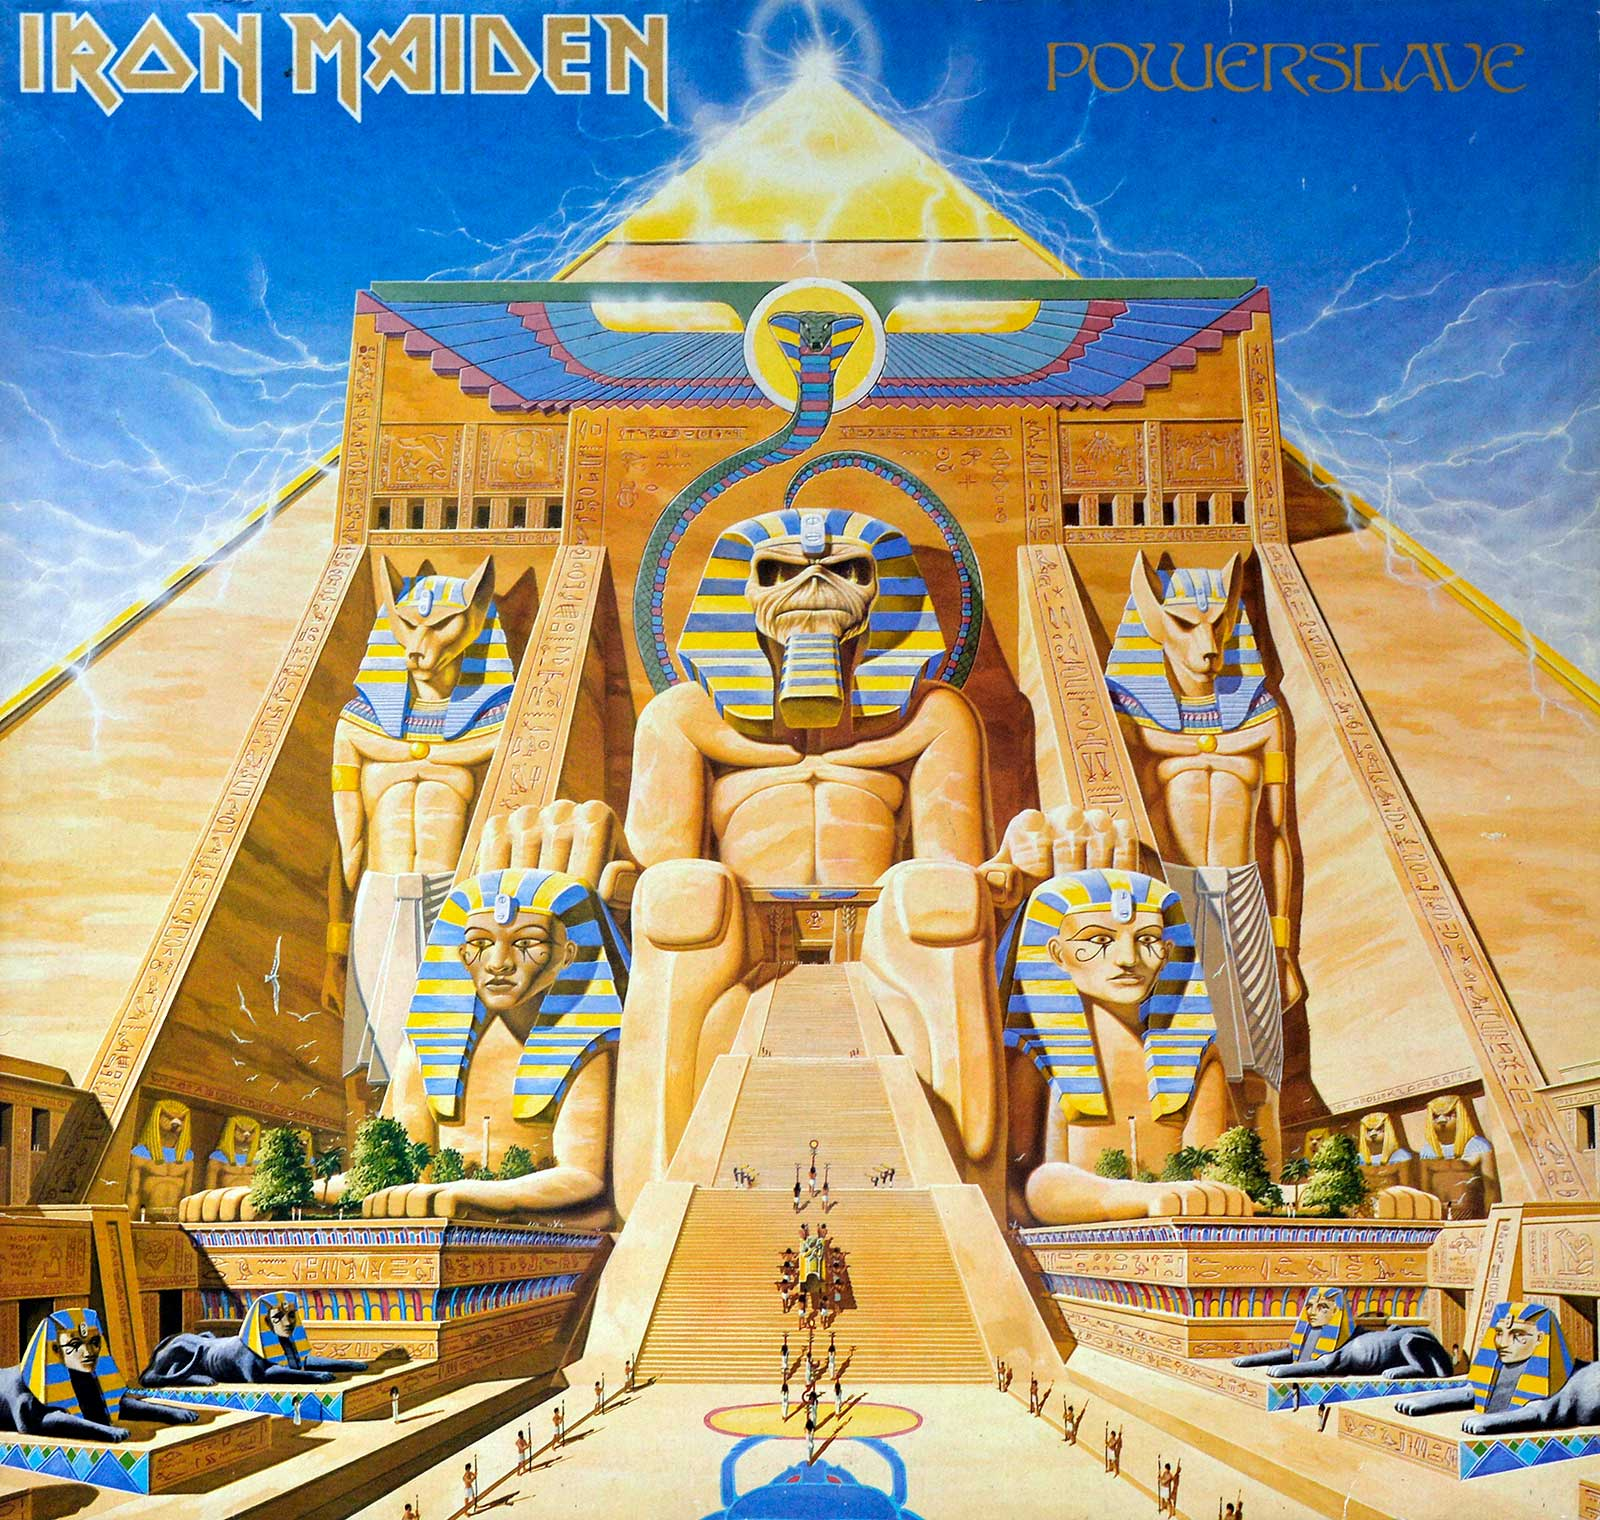 Very Large Hires Photo of Powerslave Front Cover